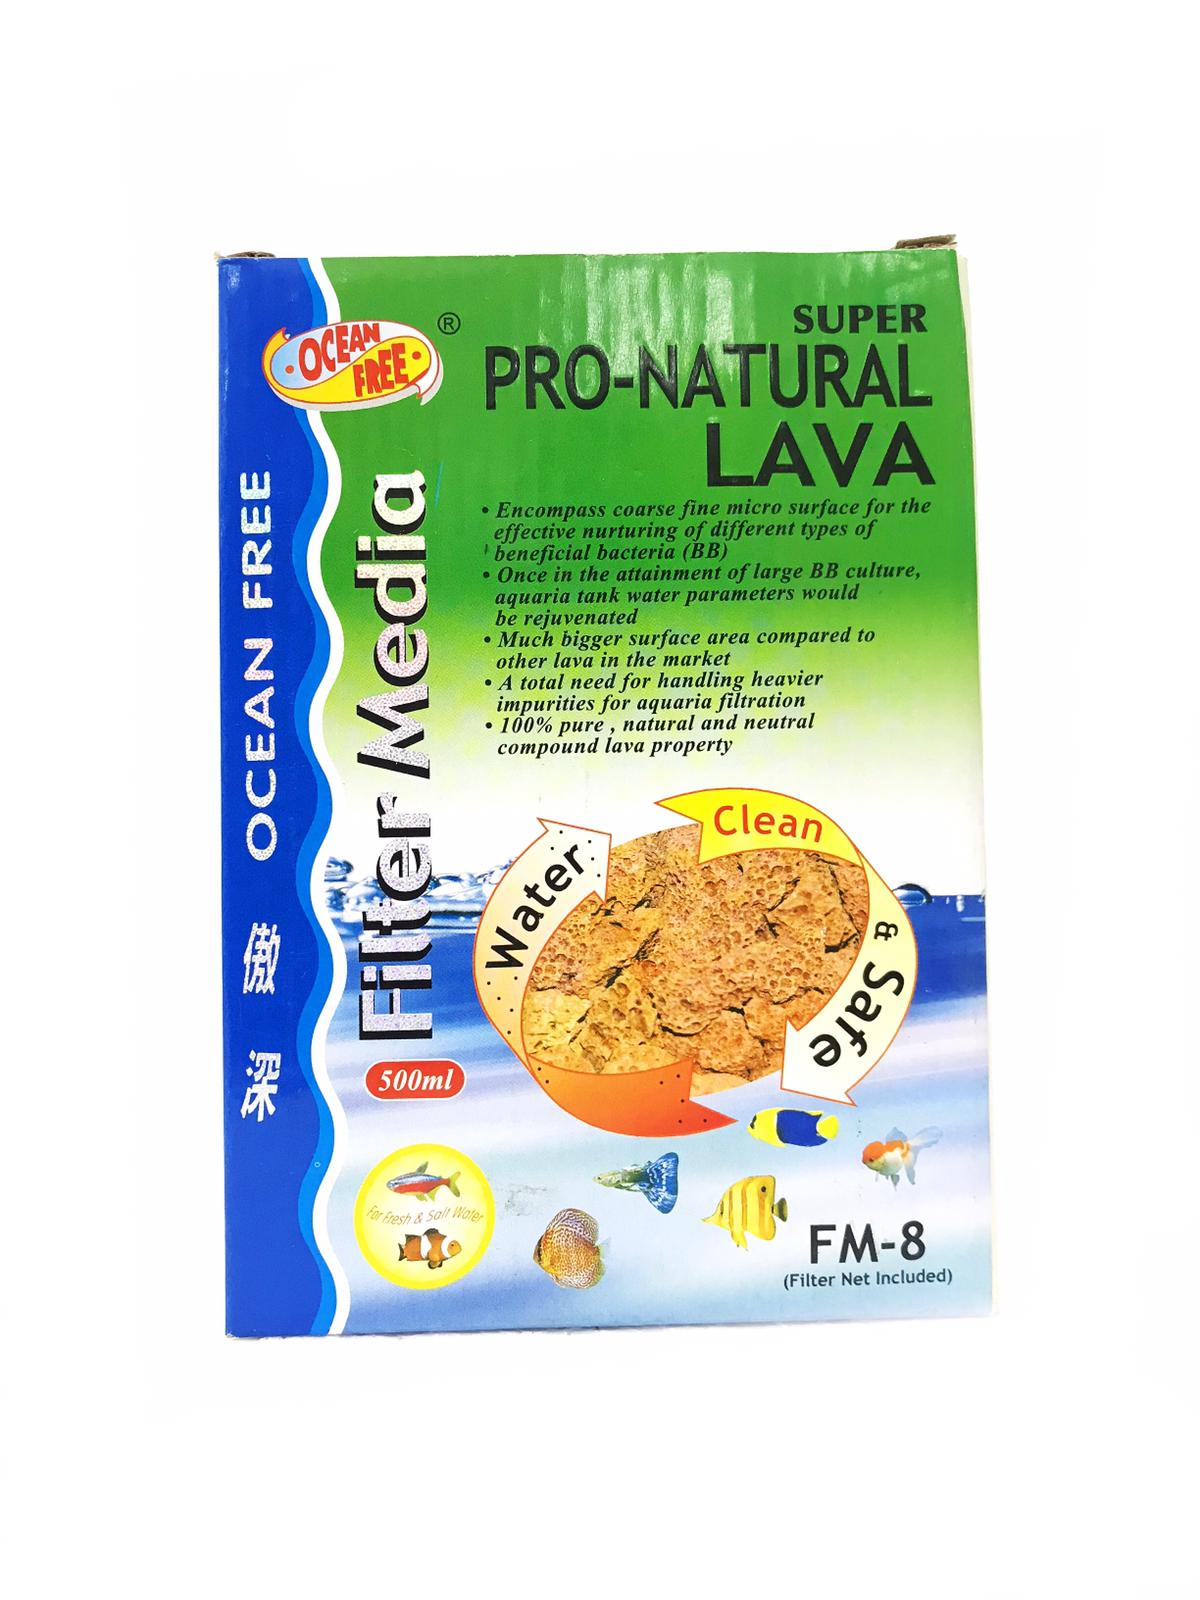 OF Super Pro-Natural Lava FM-8